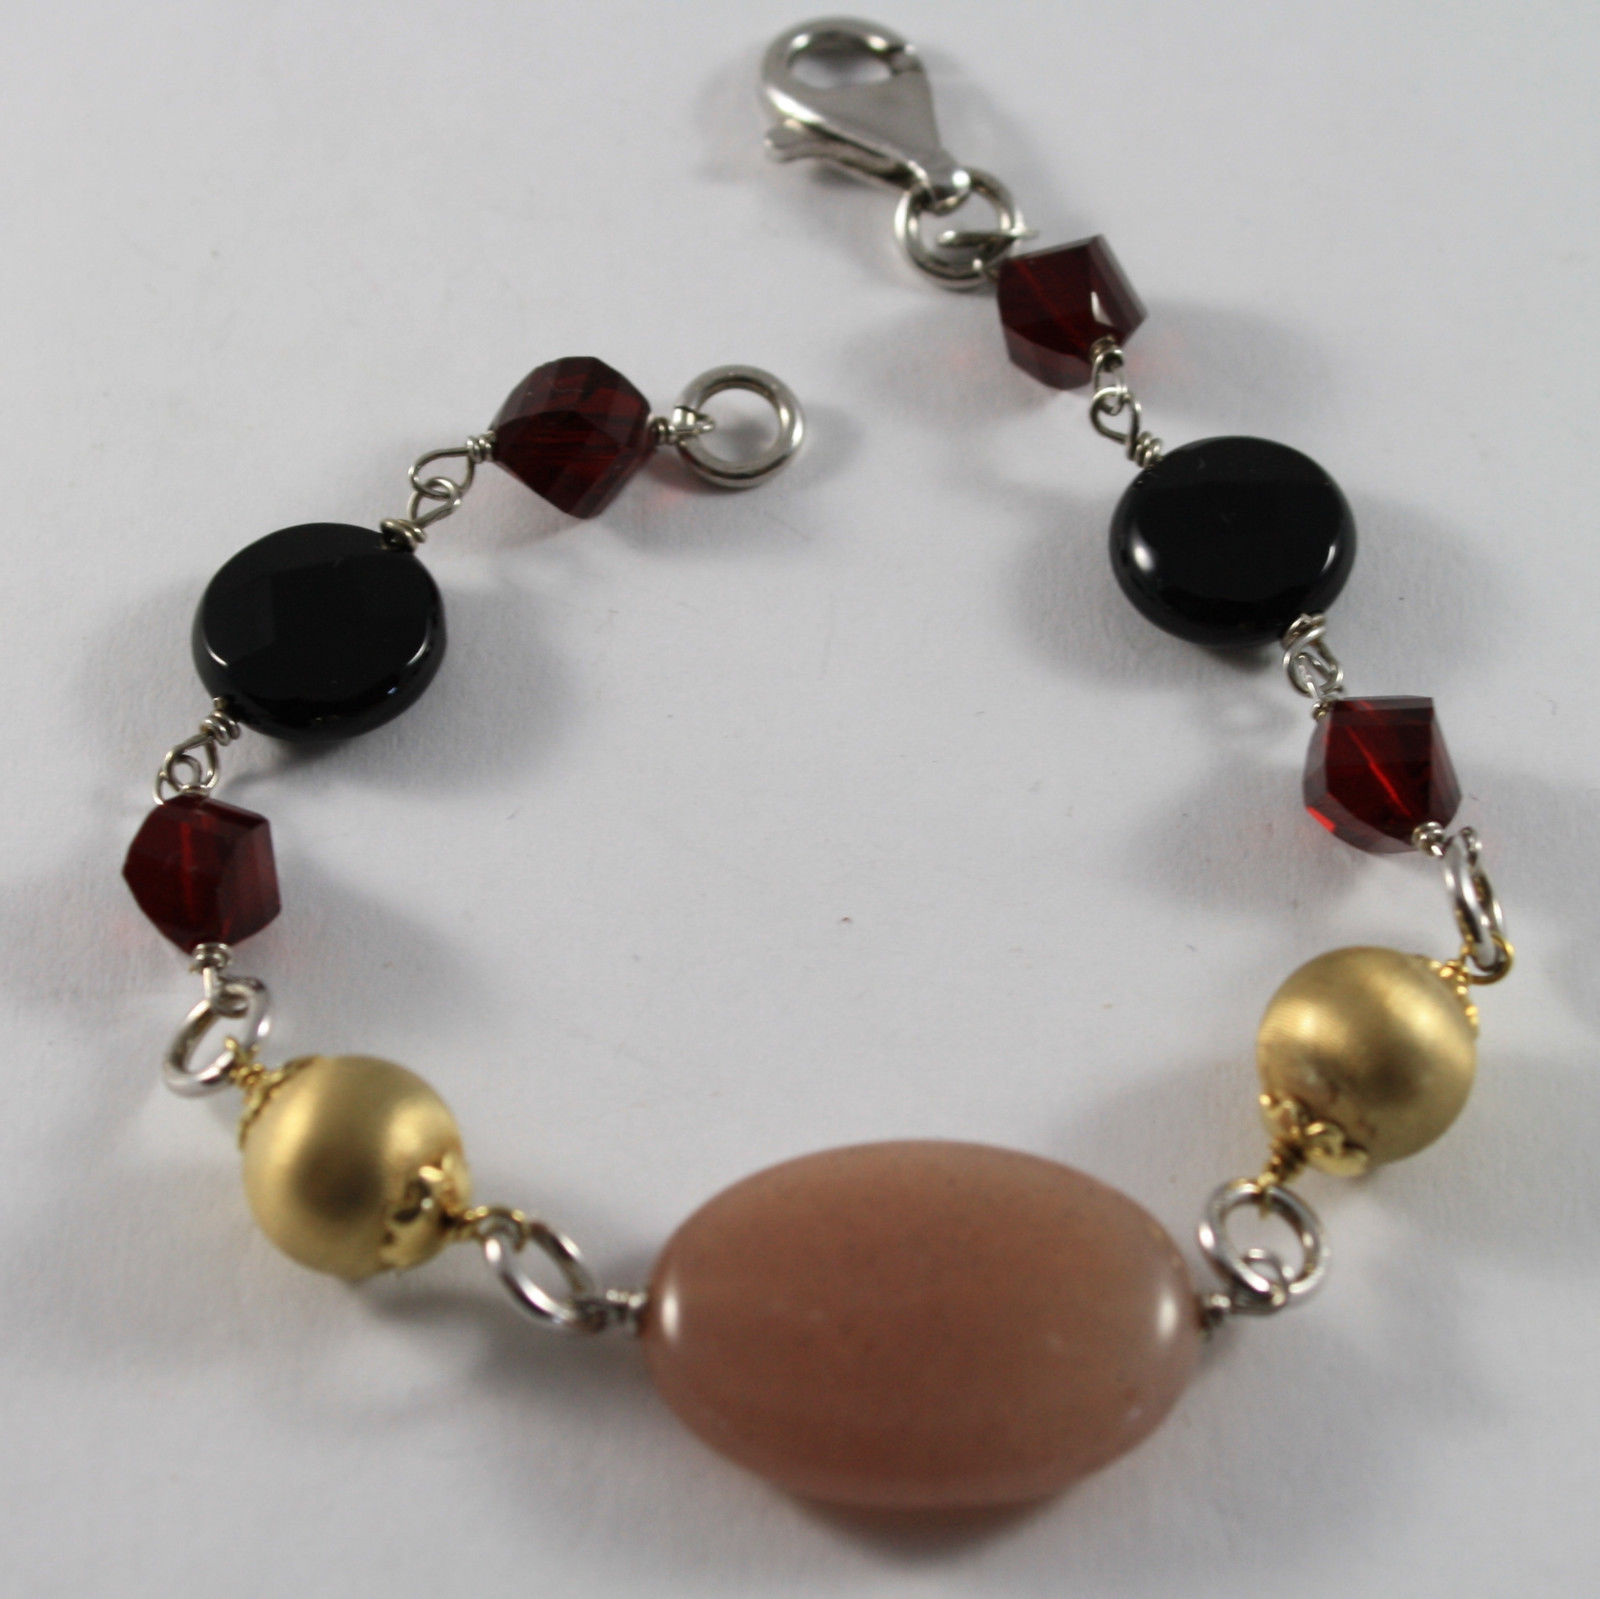 .925 RHODIUM SILVER BRACELET WITH PINK JADE, RED CRISTAL, AND BLACK ONYX